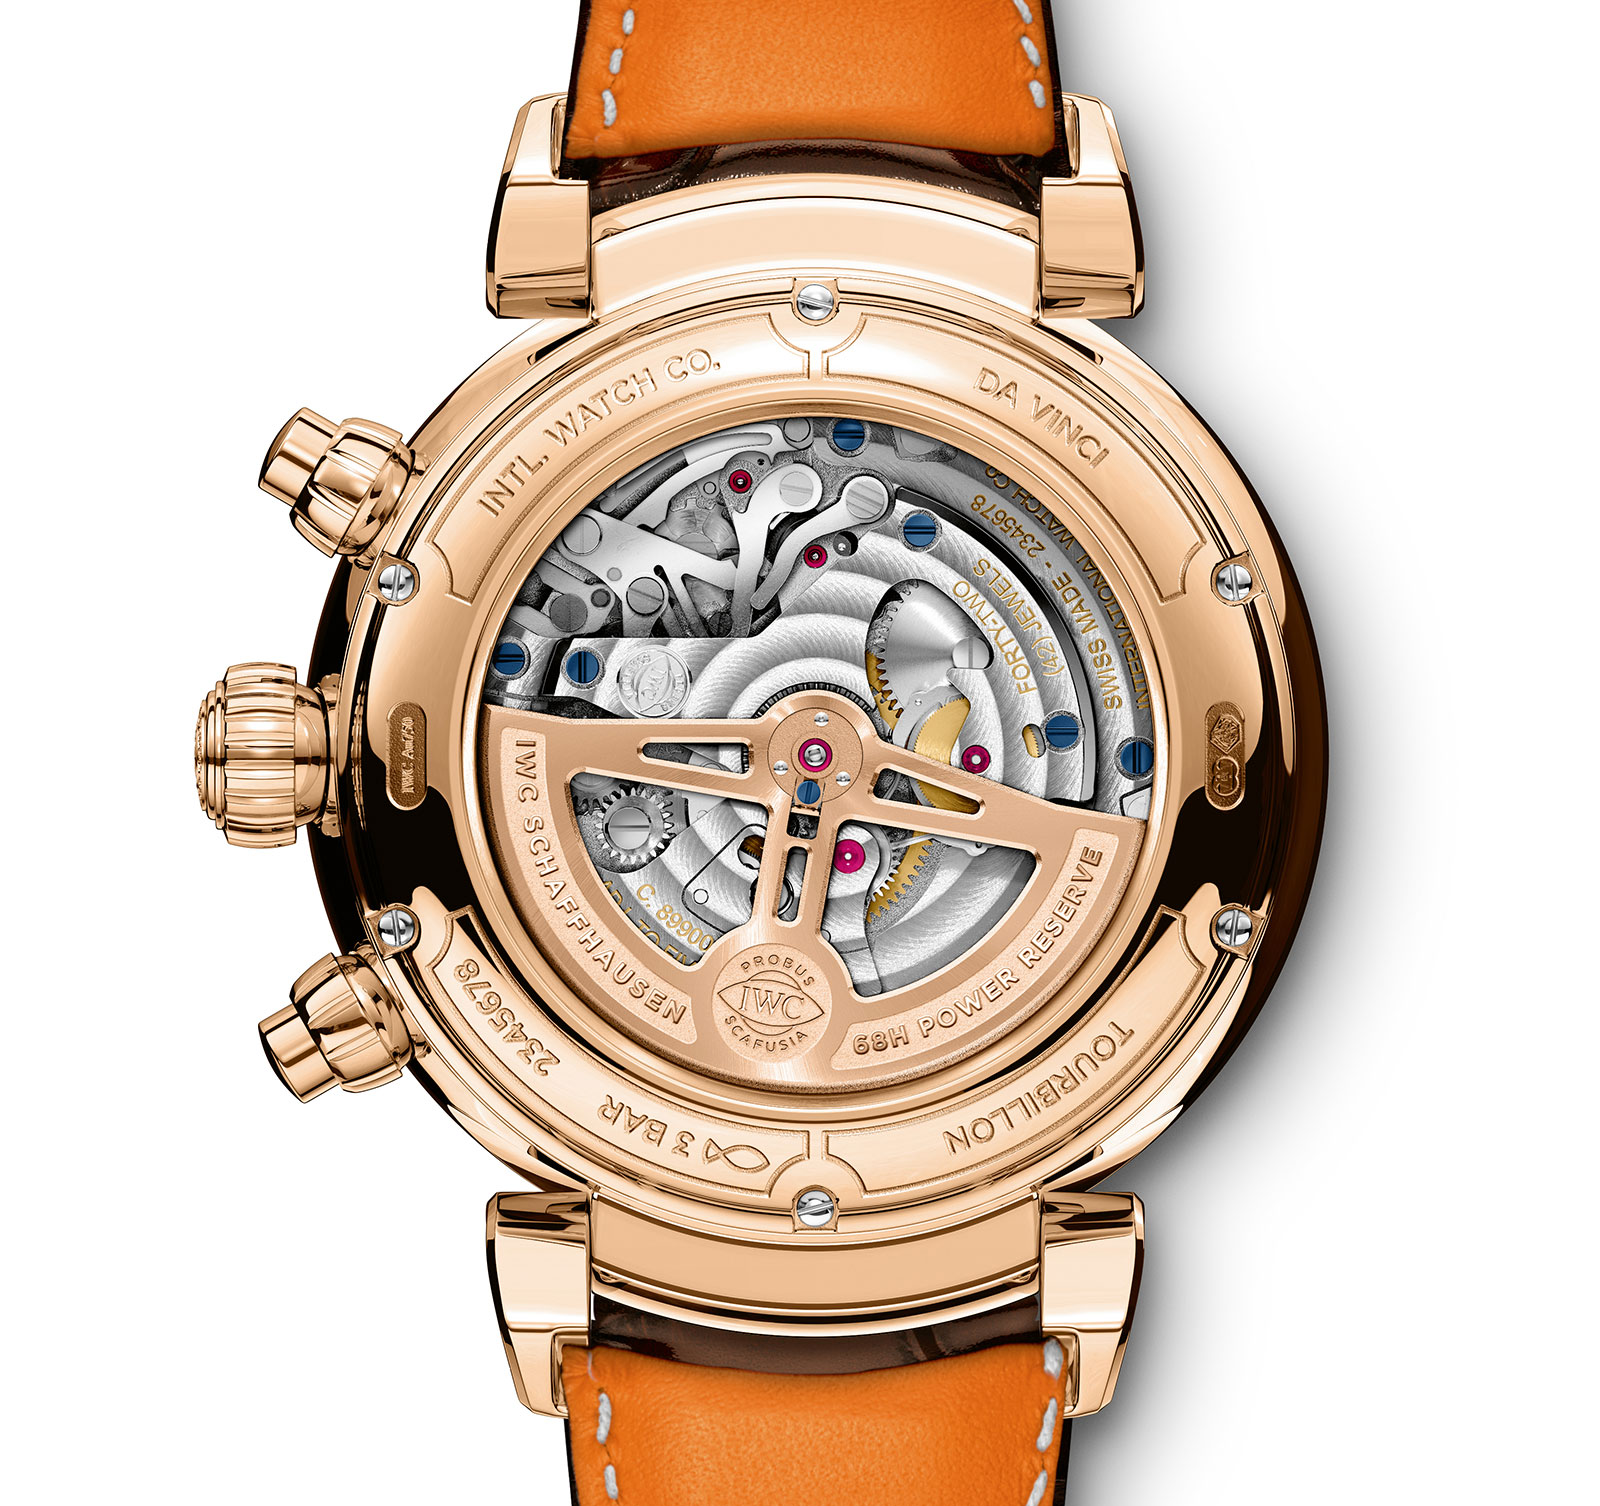 IWC Da Vinci Tourbillon Retrograde Chronograph 1